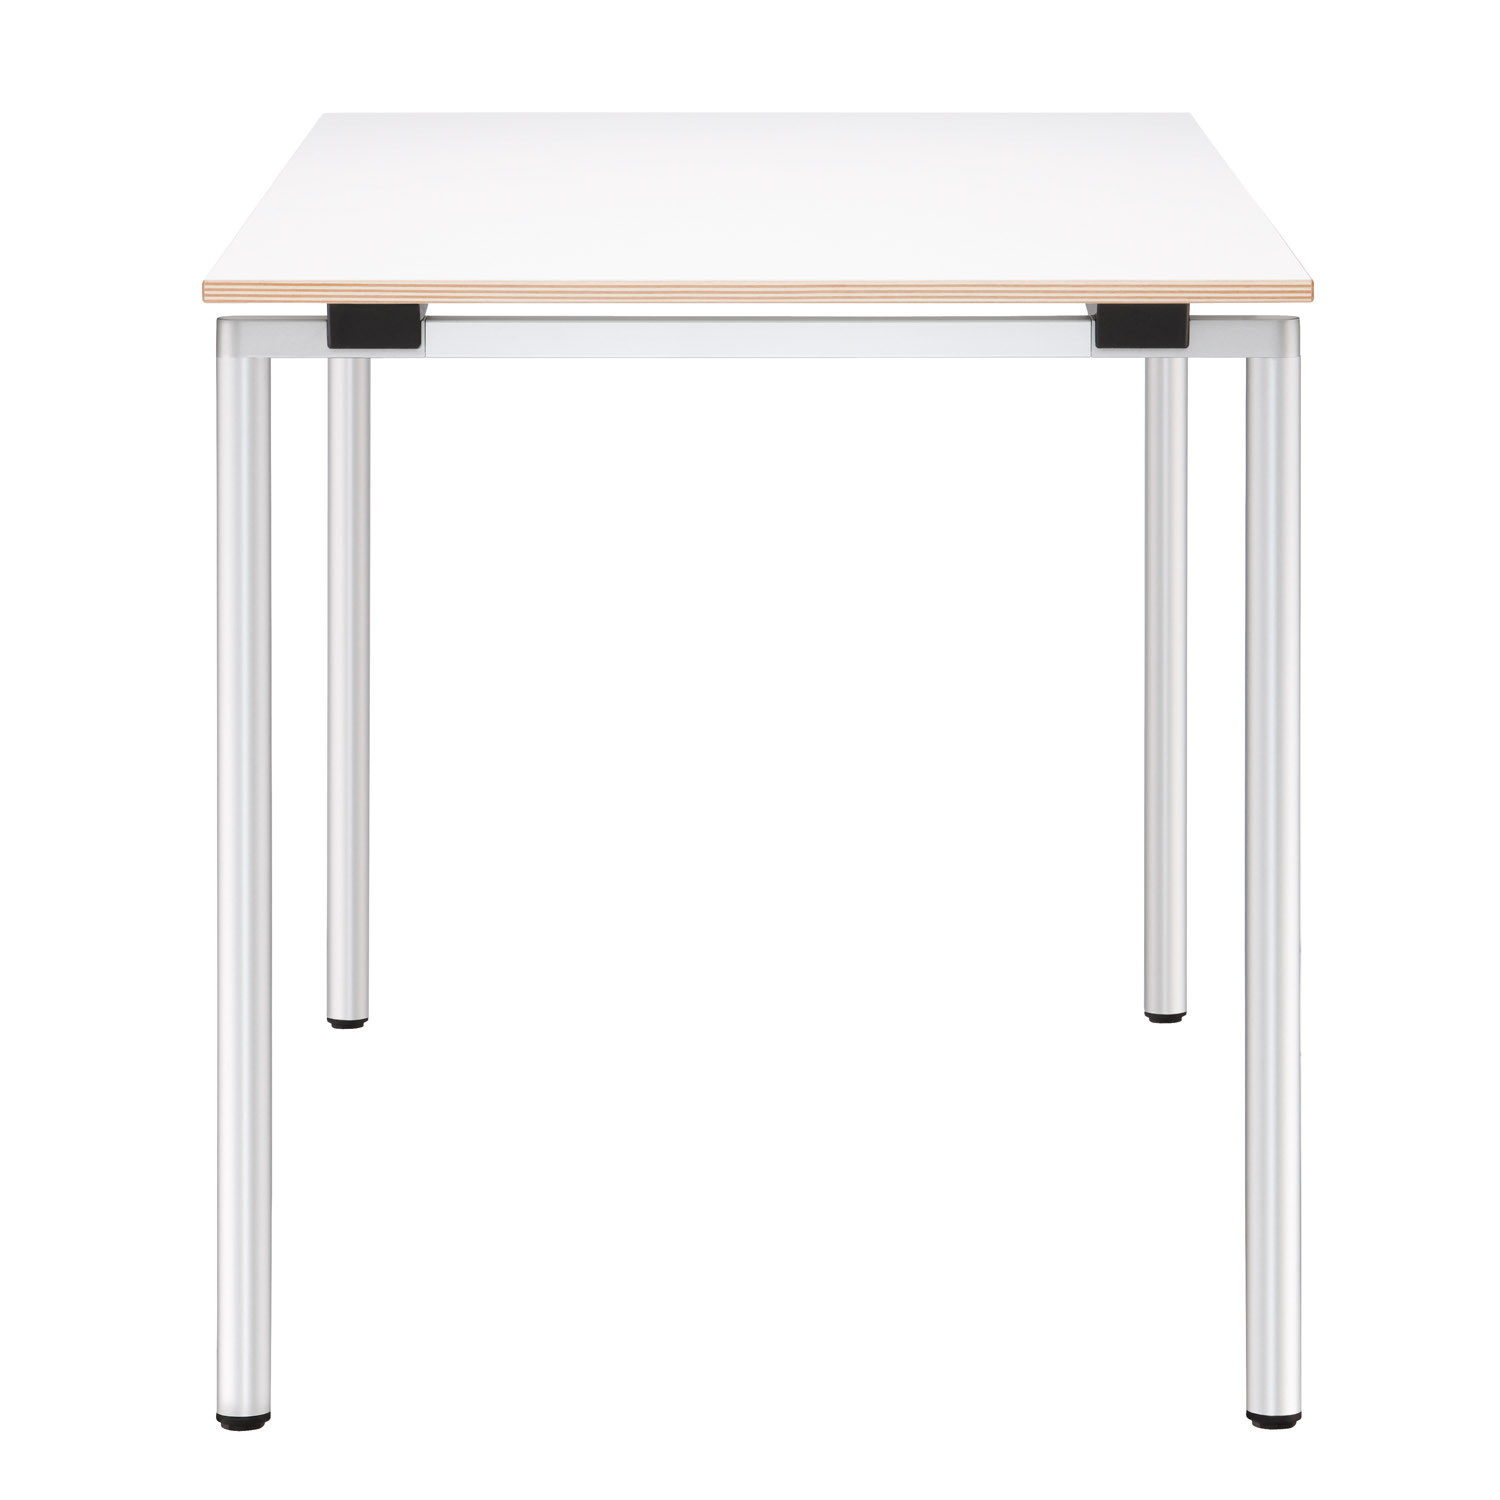 Brunner Trust Folding Table